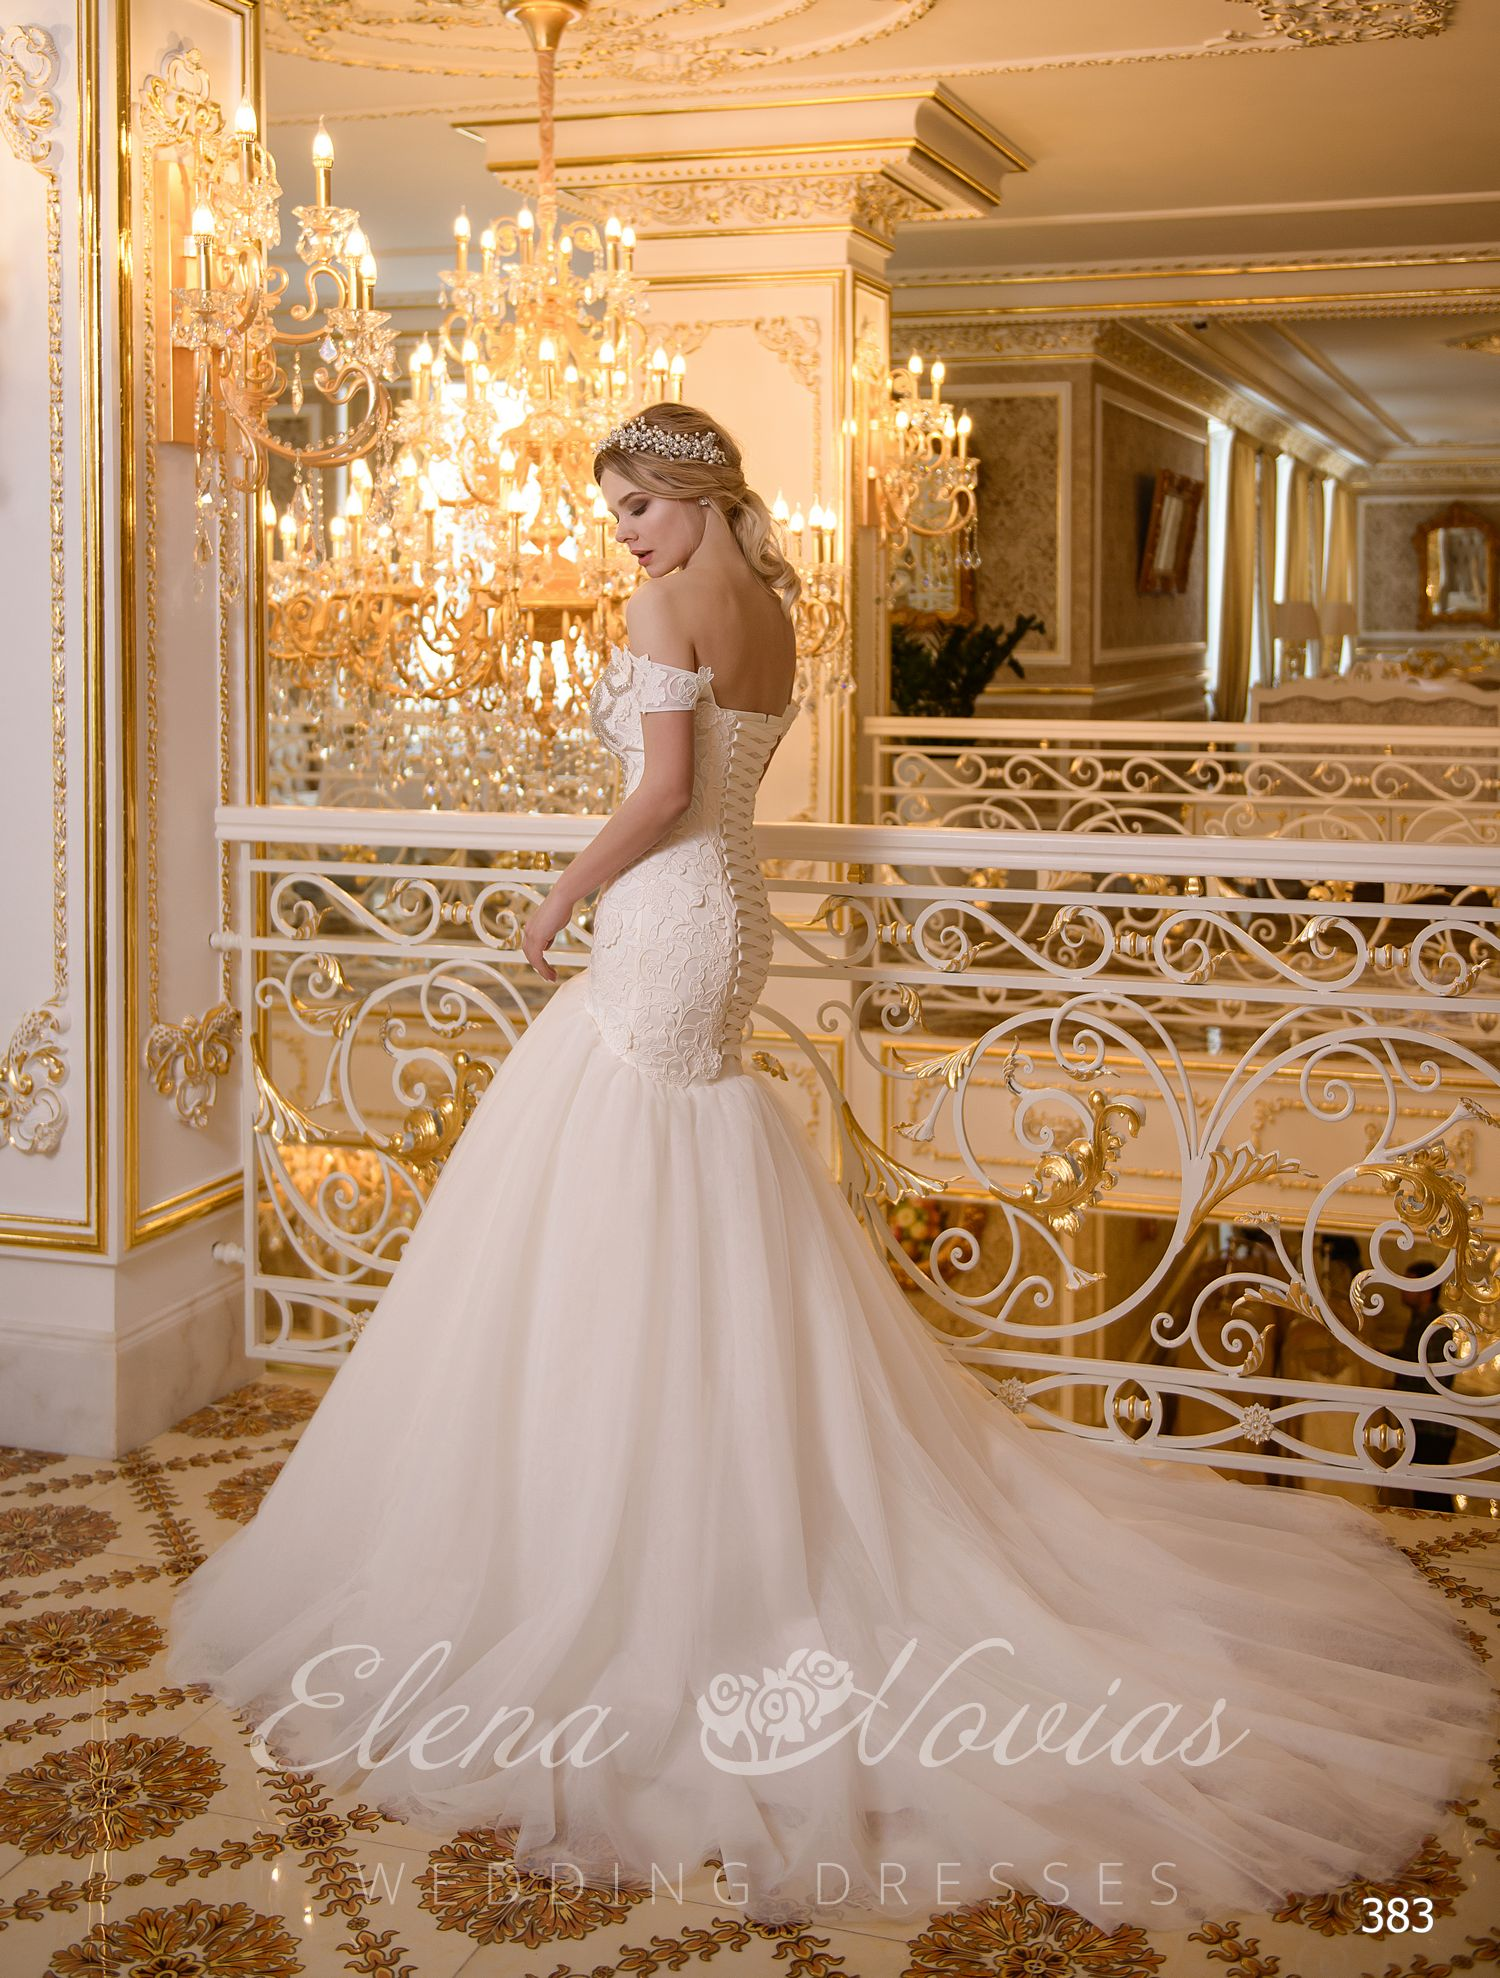 Elegant wedding dress Godet from Elenanovias